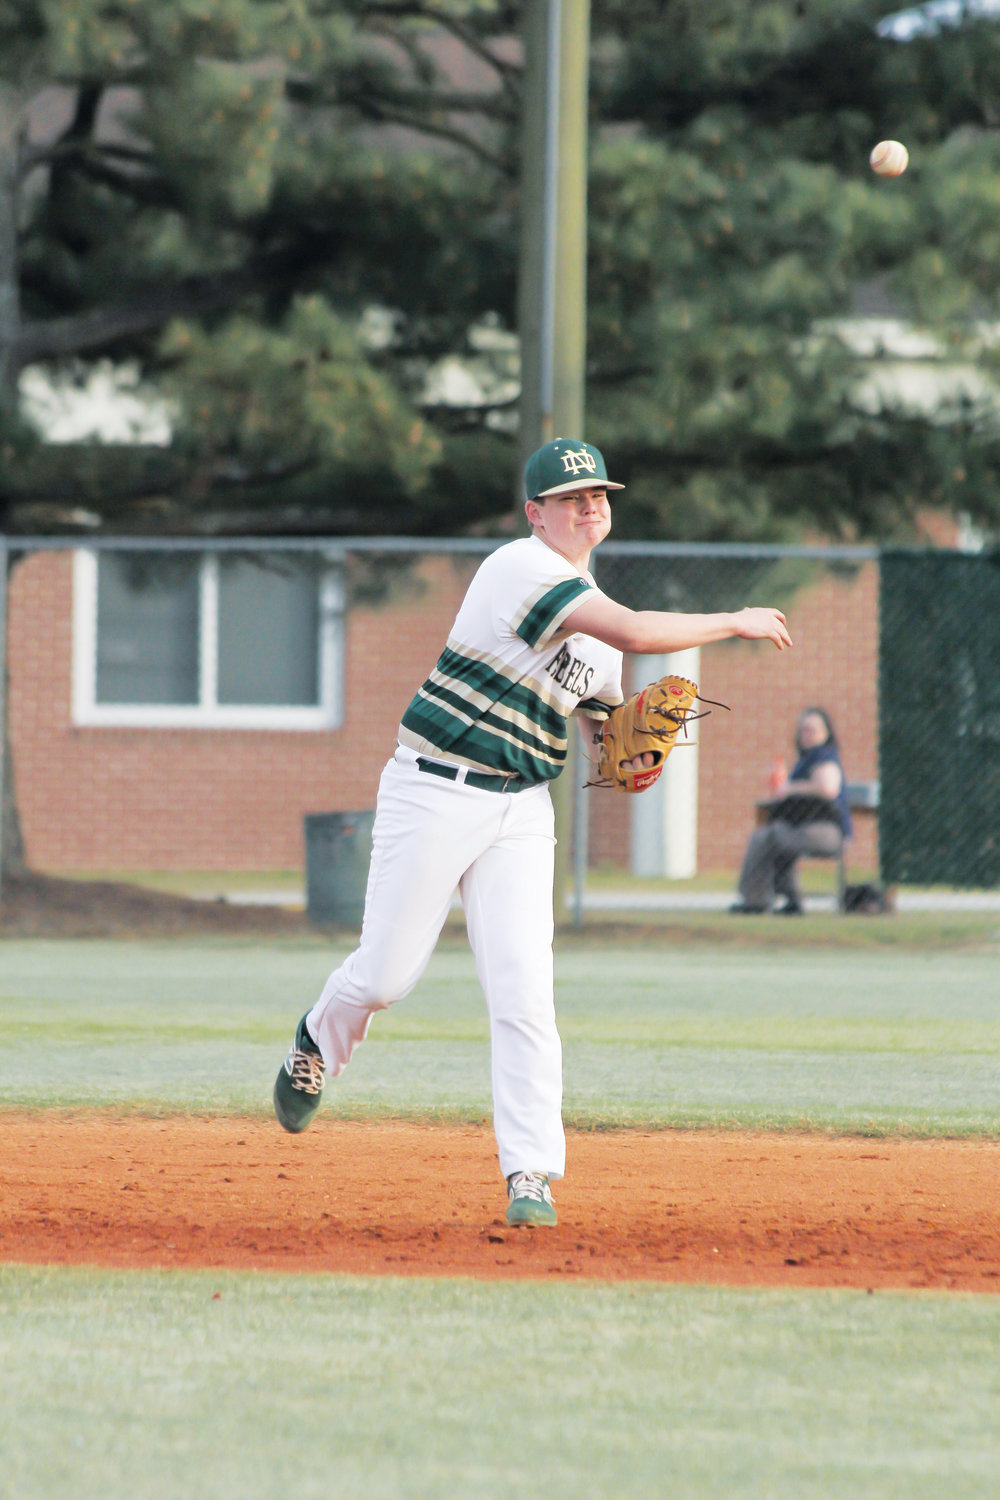 Gavin Lee throws to first base during North Duplin's 8-0 win against Neuse Charter on Thursday.